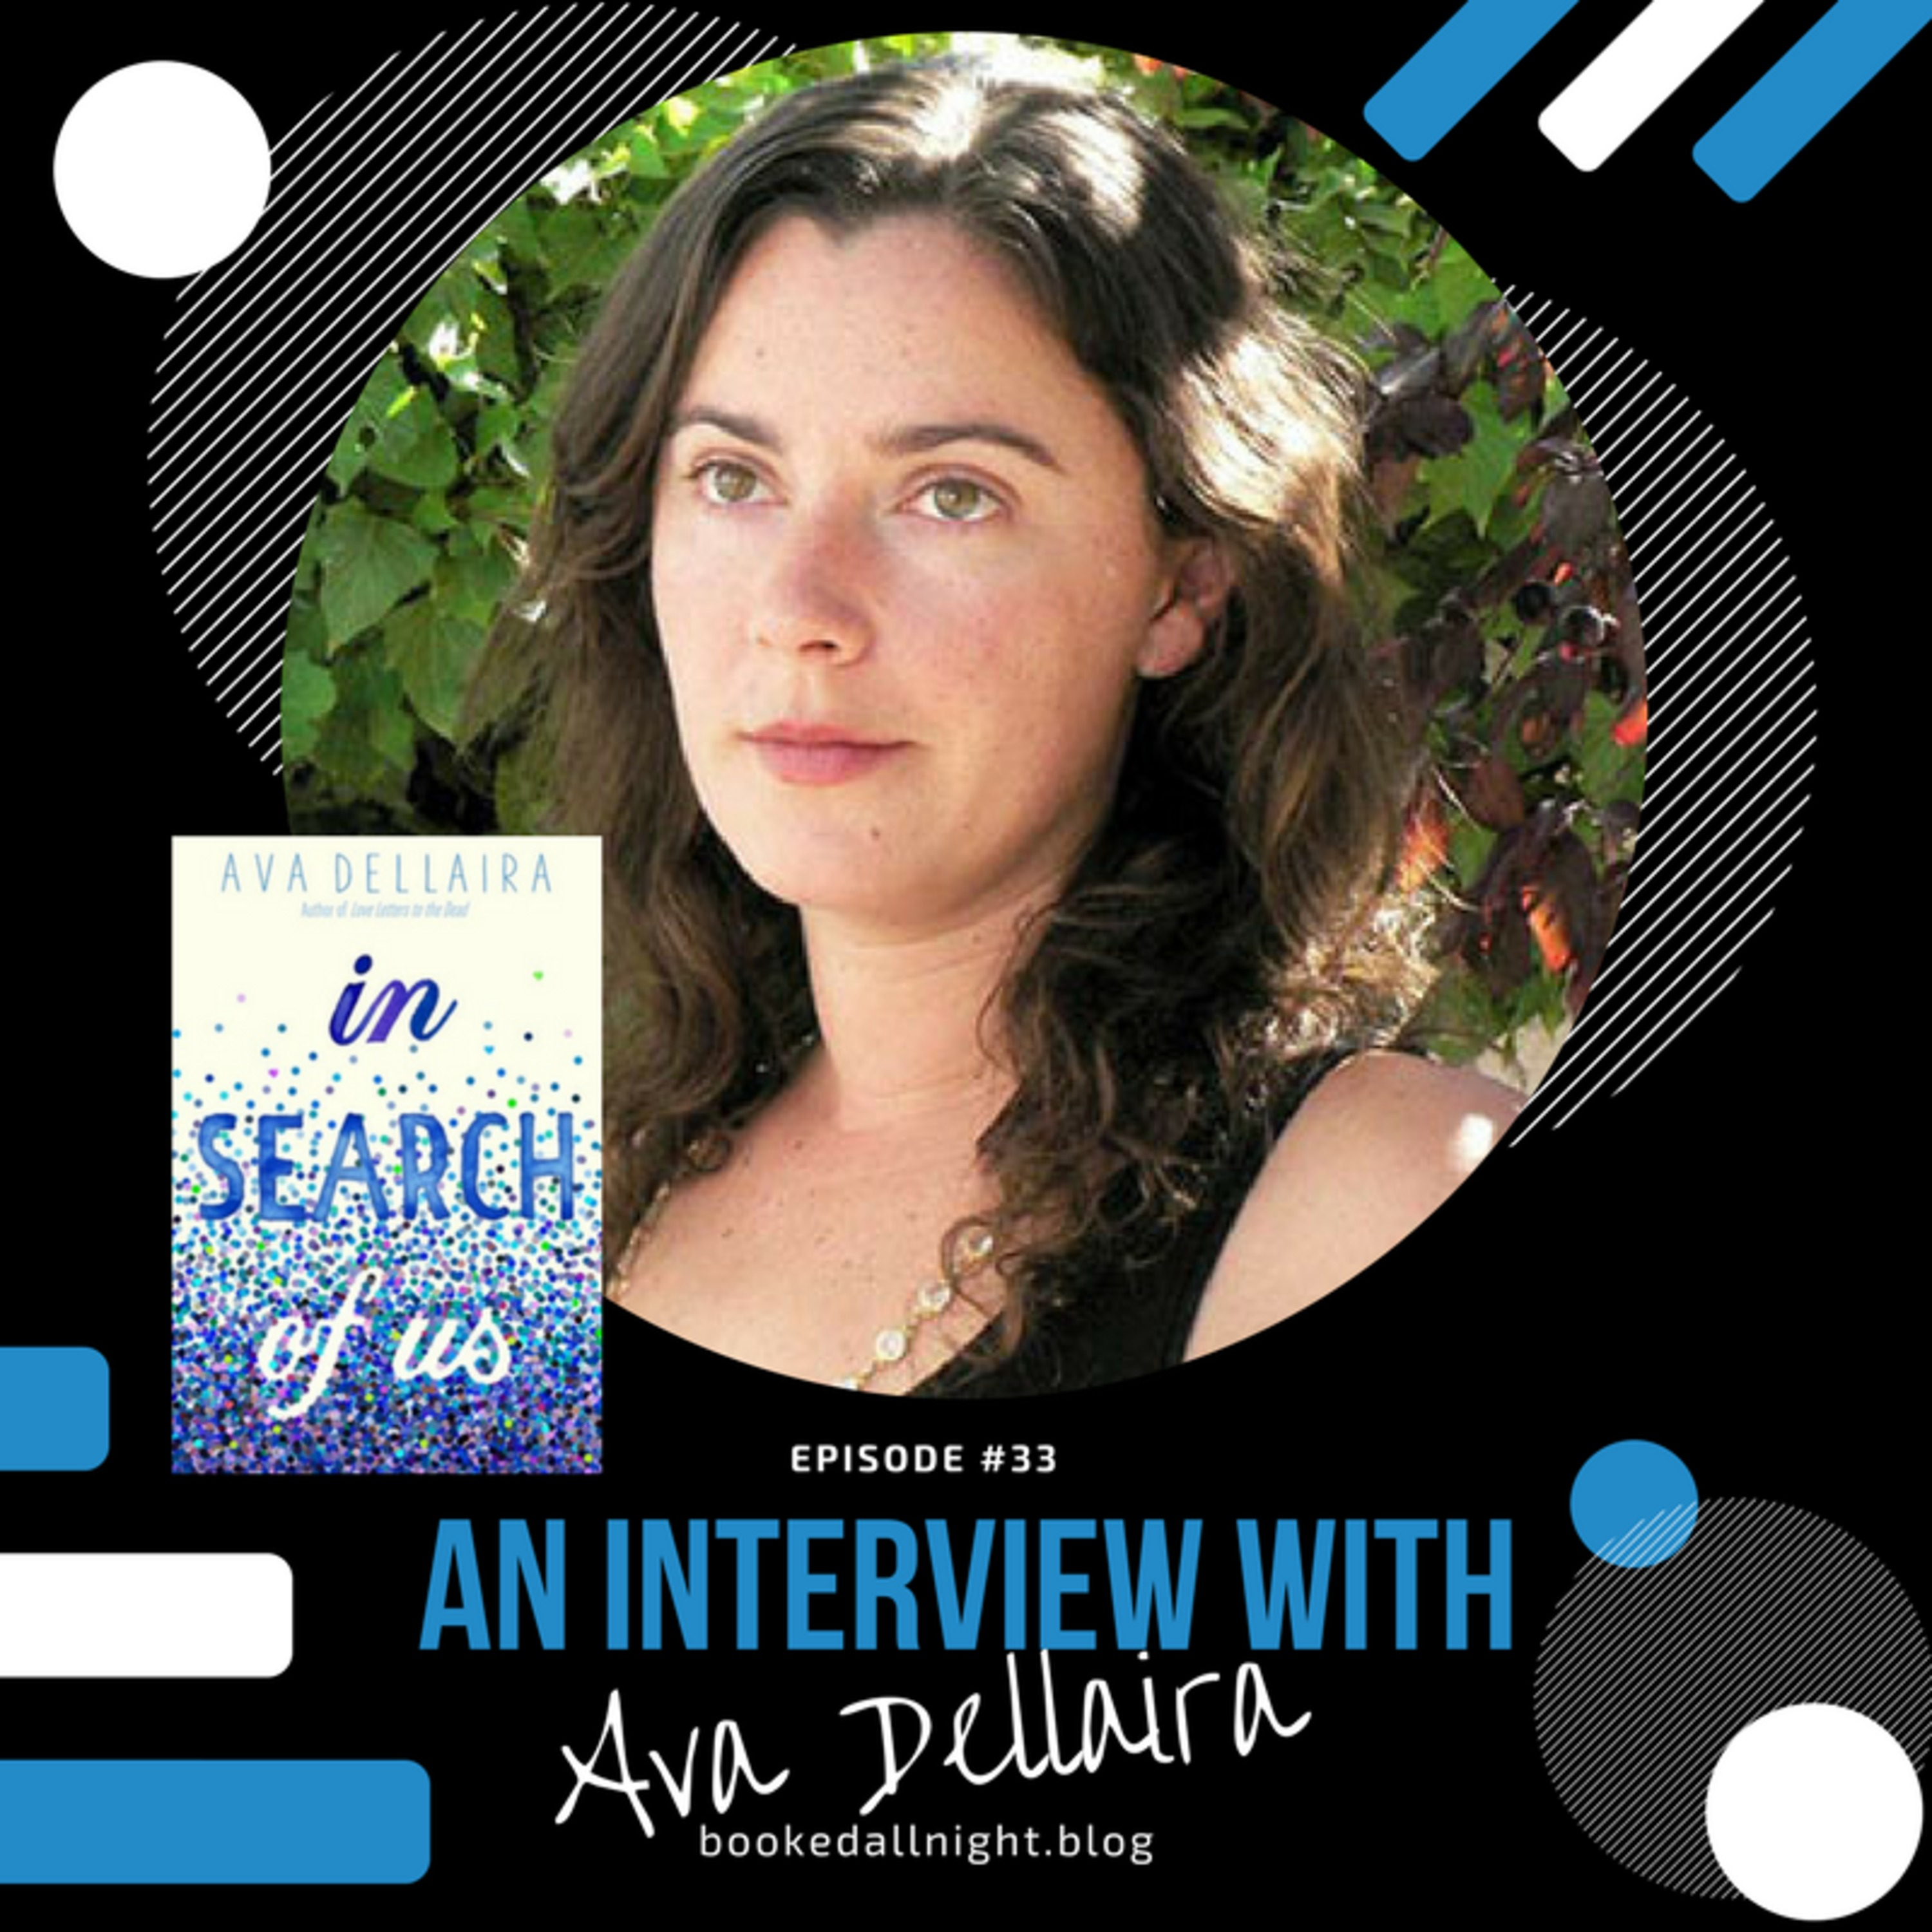 An Interview with Ava Dellaira